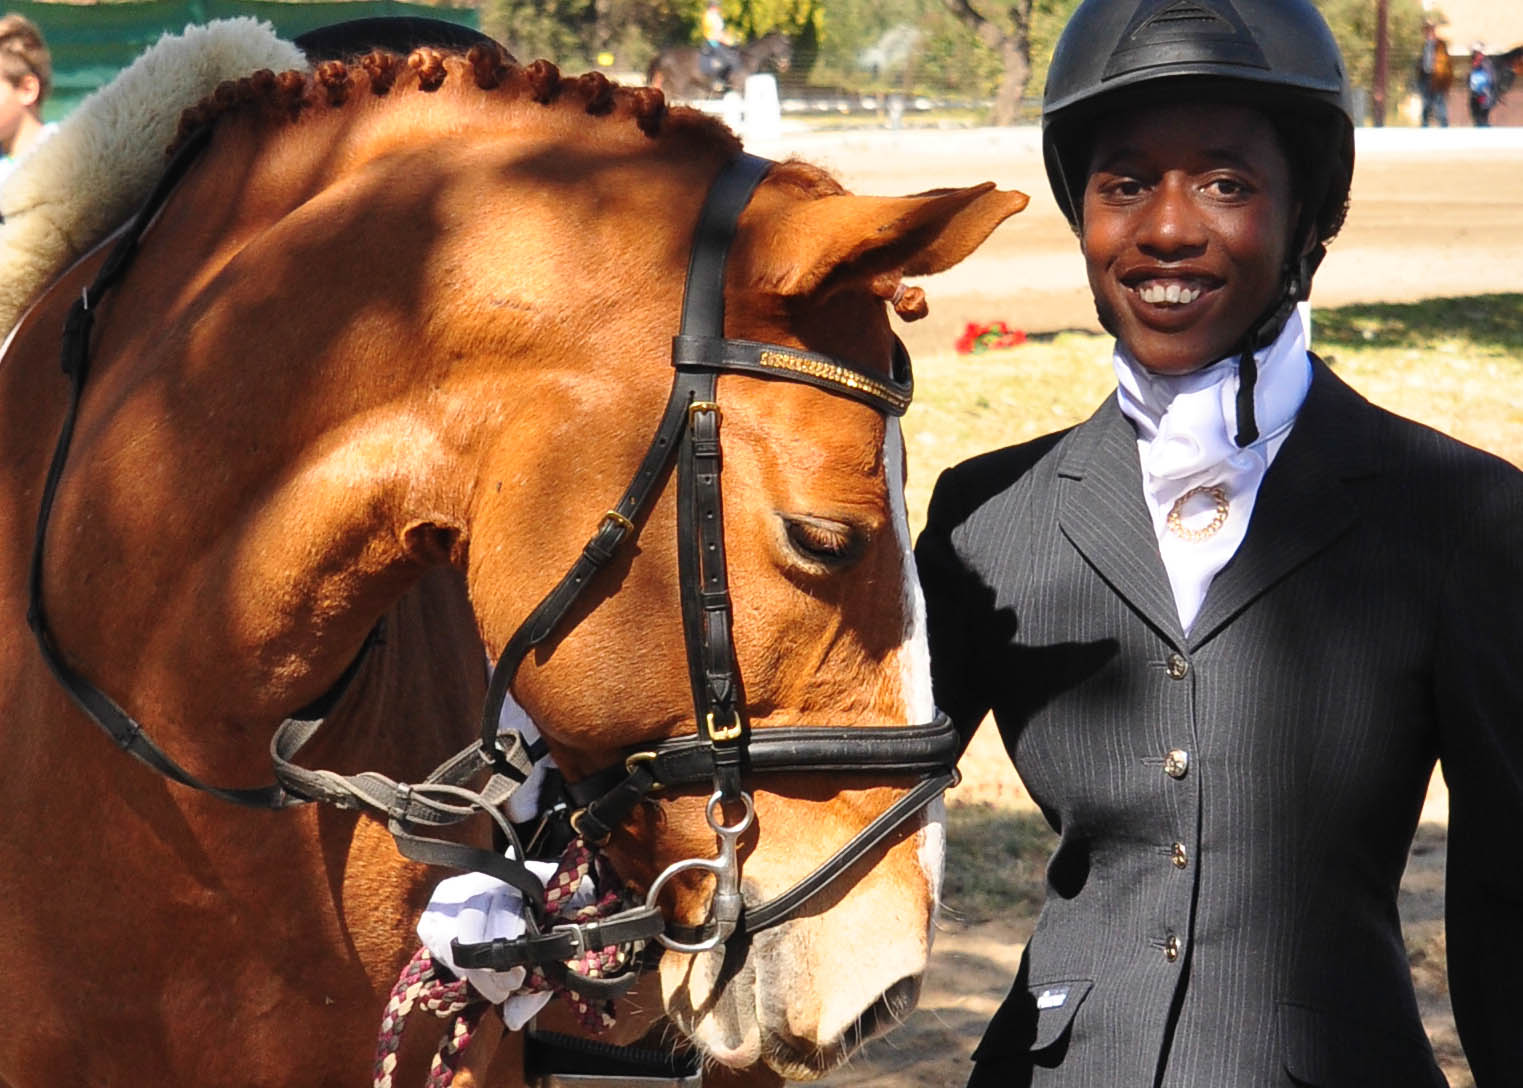 touching sabc interview of our paralympian dressage prospect touching sabc interview of our paralympian dressage prospect tamsin mbatsha bouwer e questrian focus